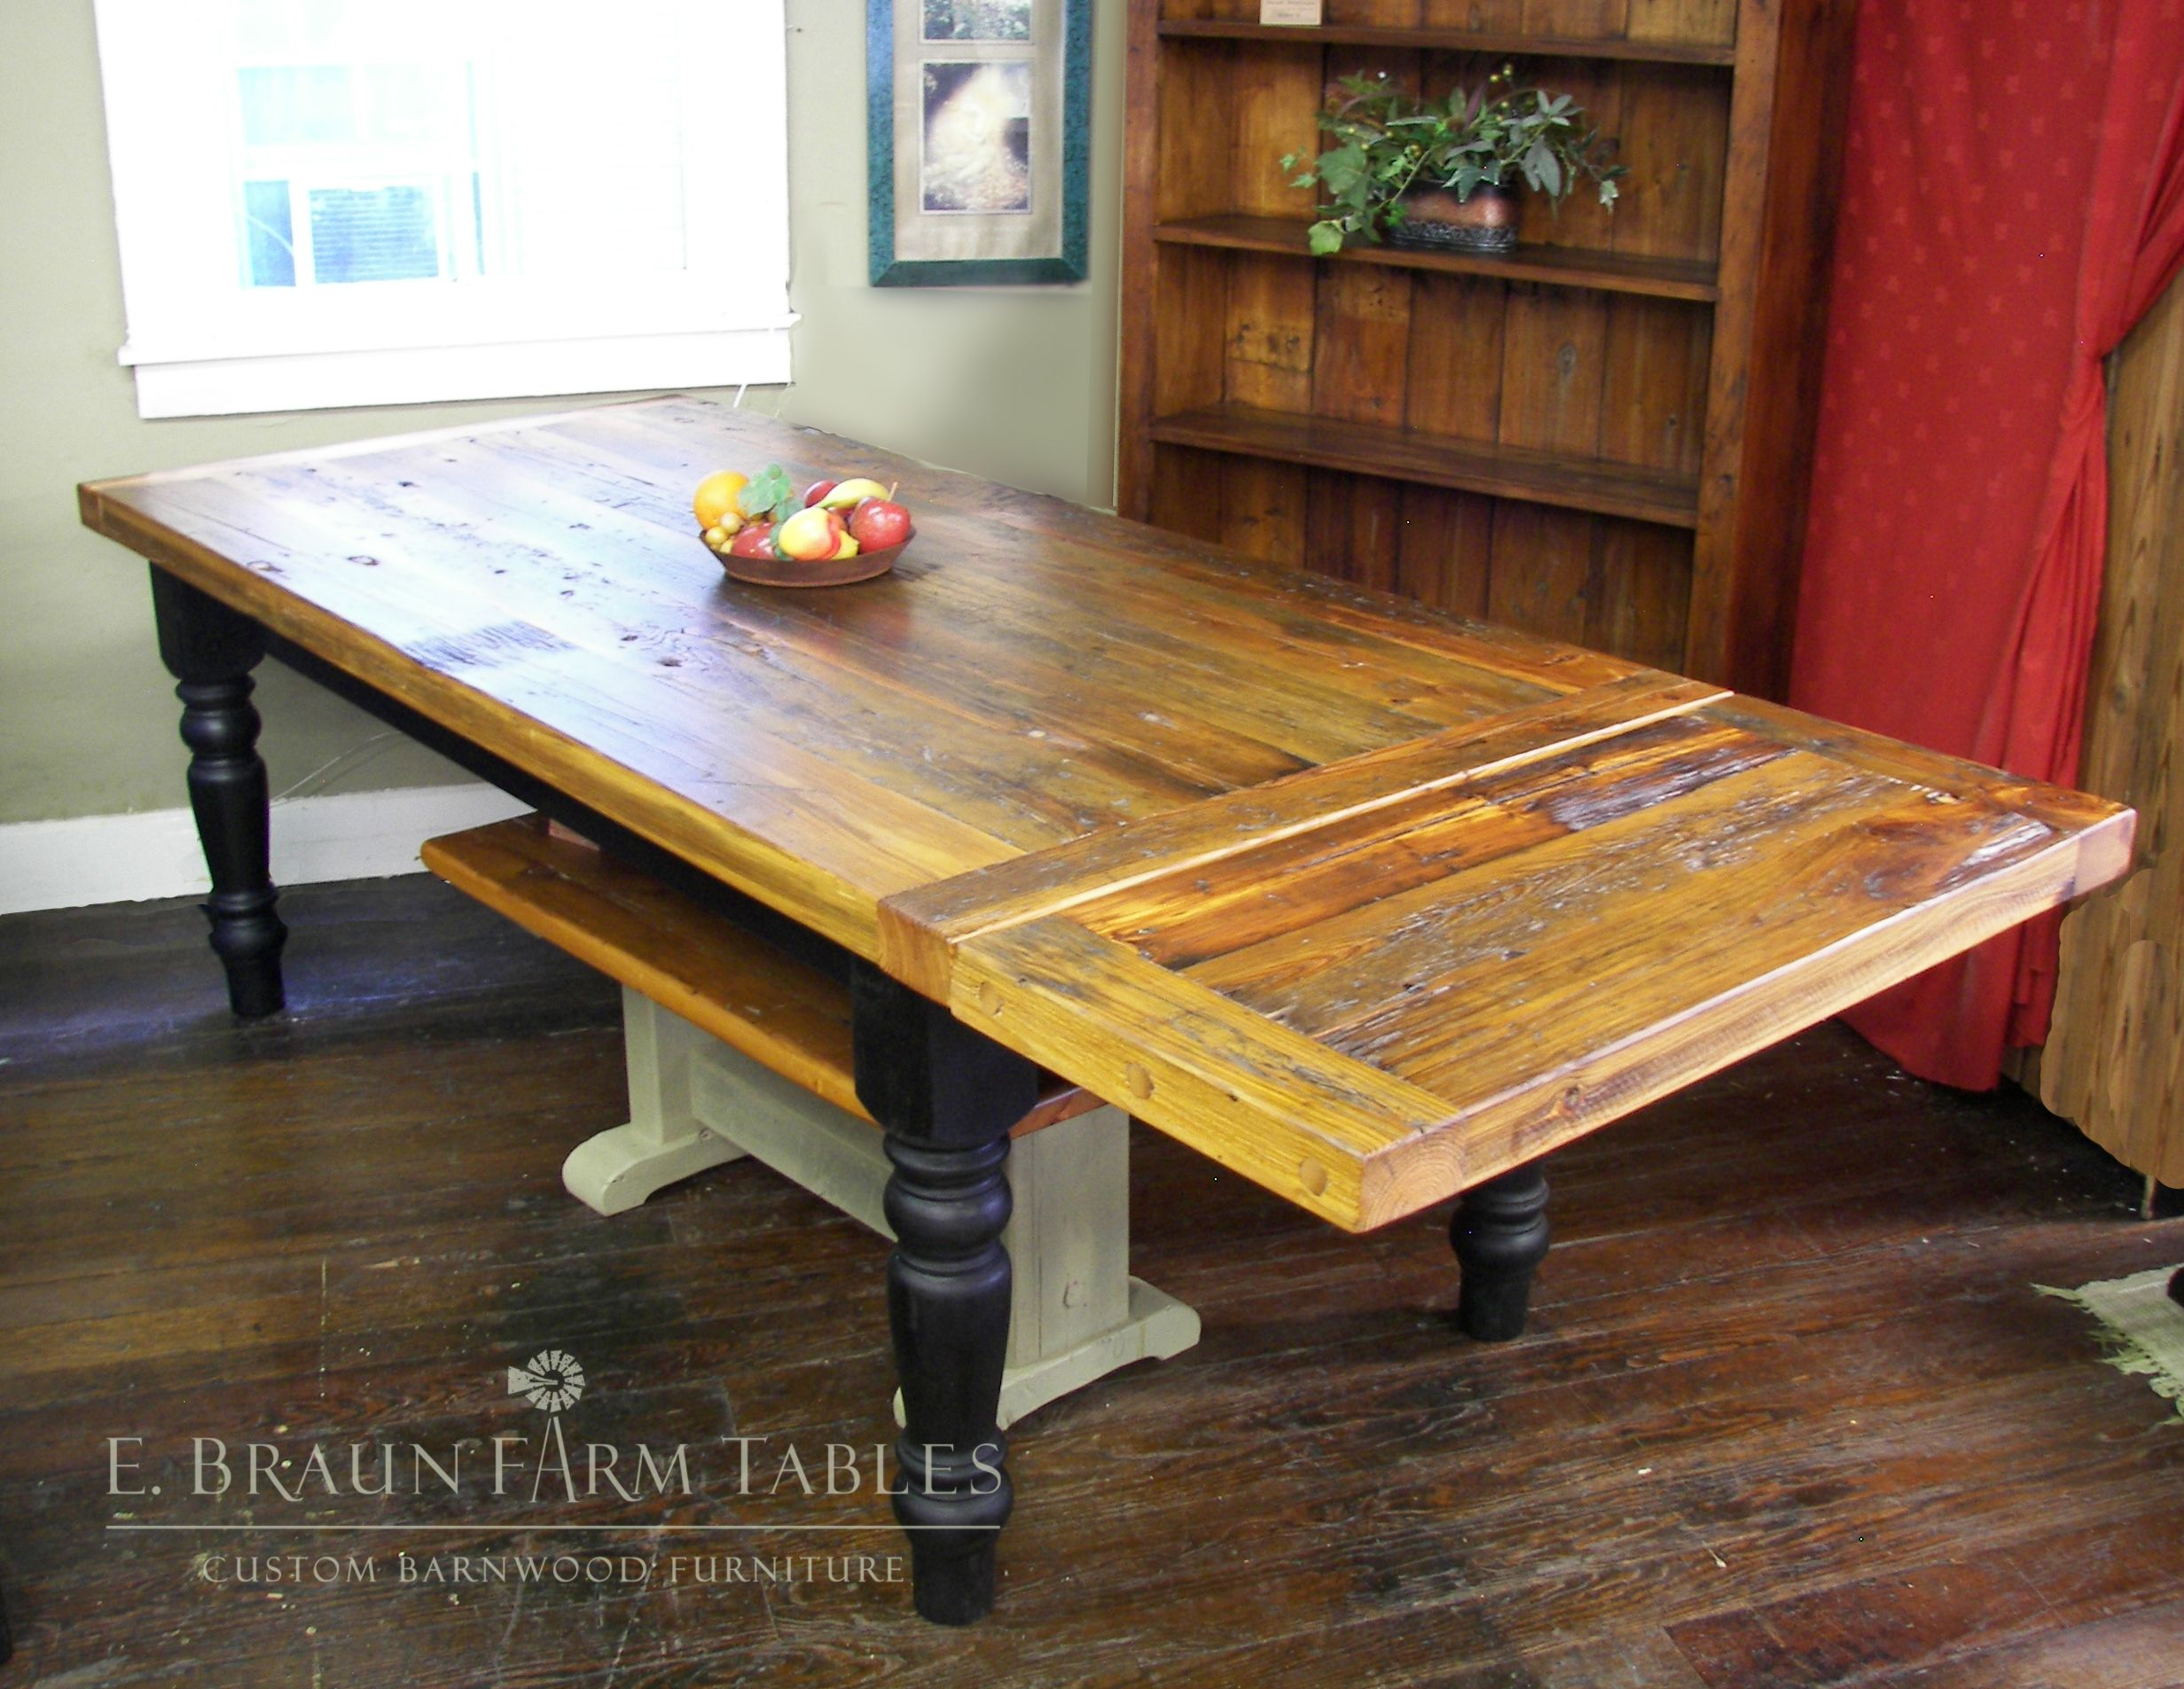 Reclaimed yellow pine farm table with pany board extension E